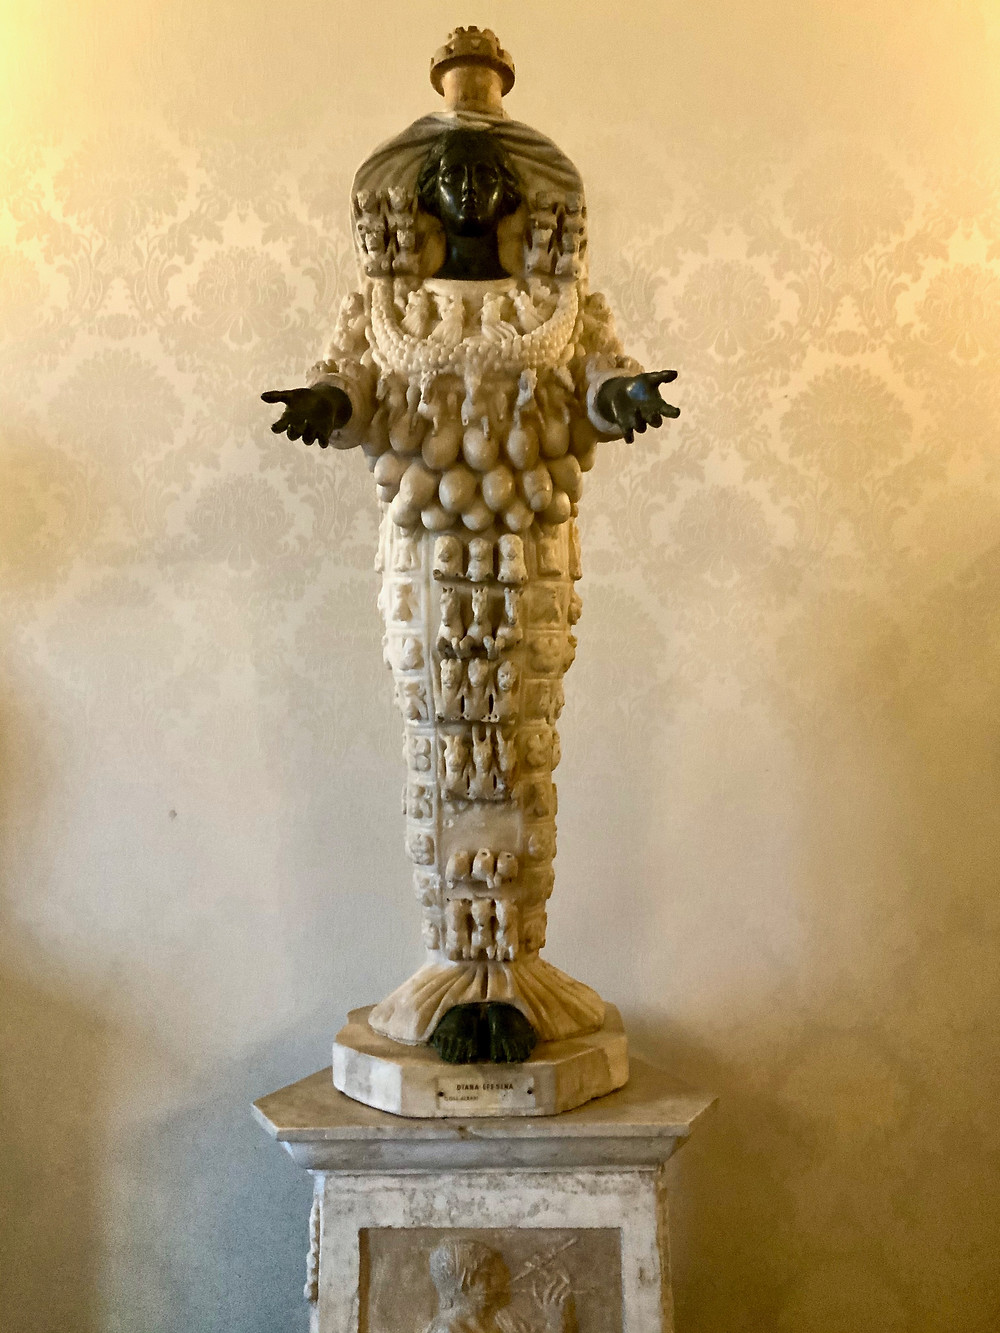 Artemis of Ephesus, the fertility cult statue